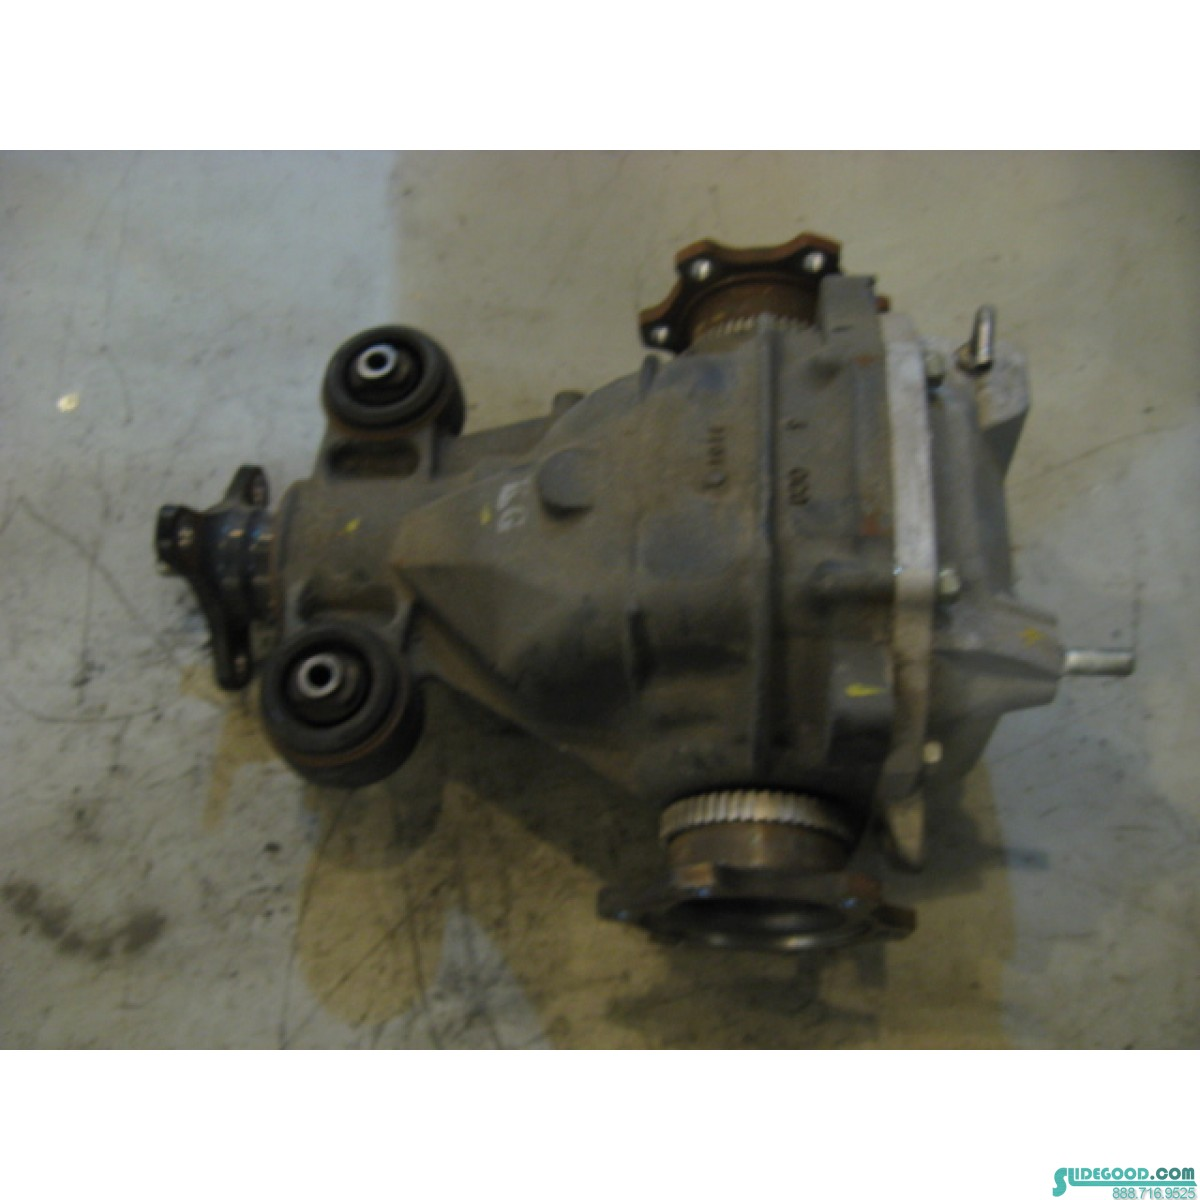 08 Infiniti G37 Auto Rear Differential Assembly R11451 Remote Start